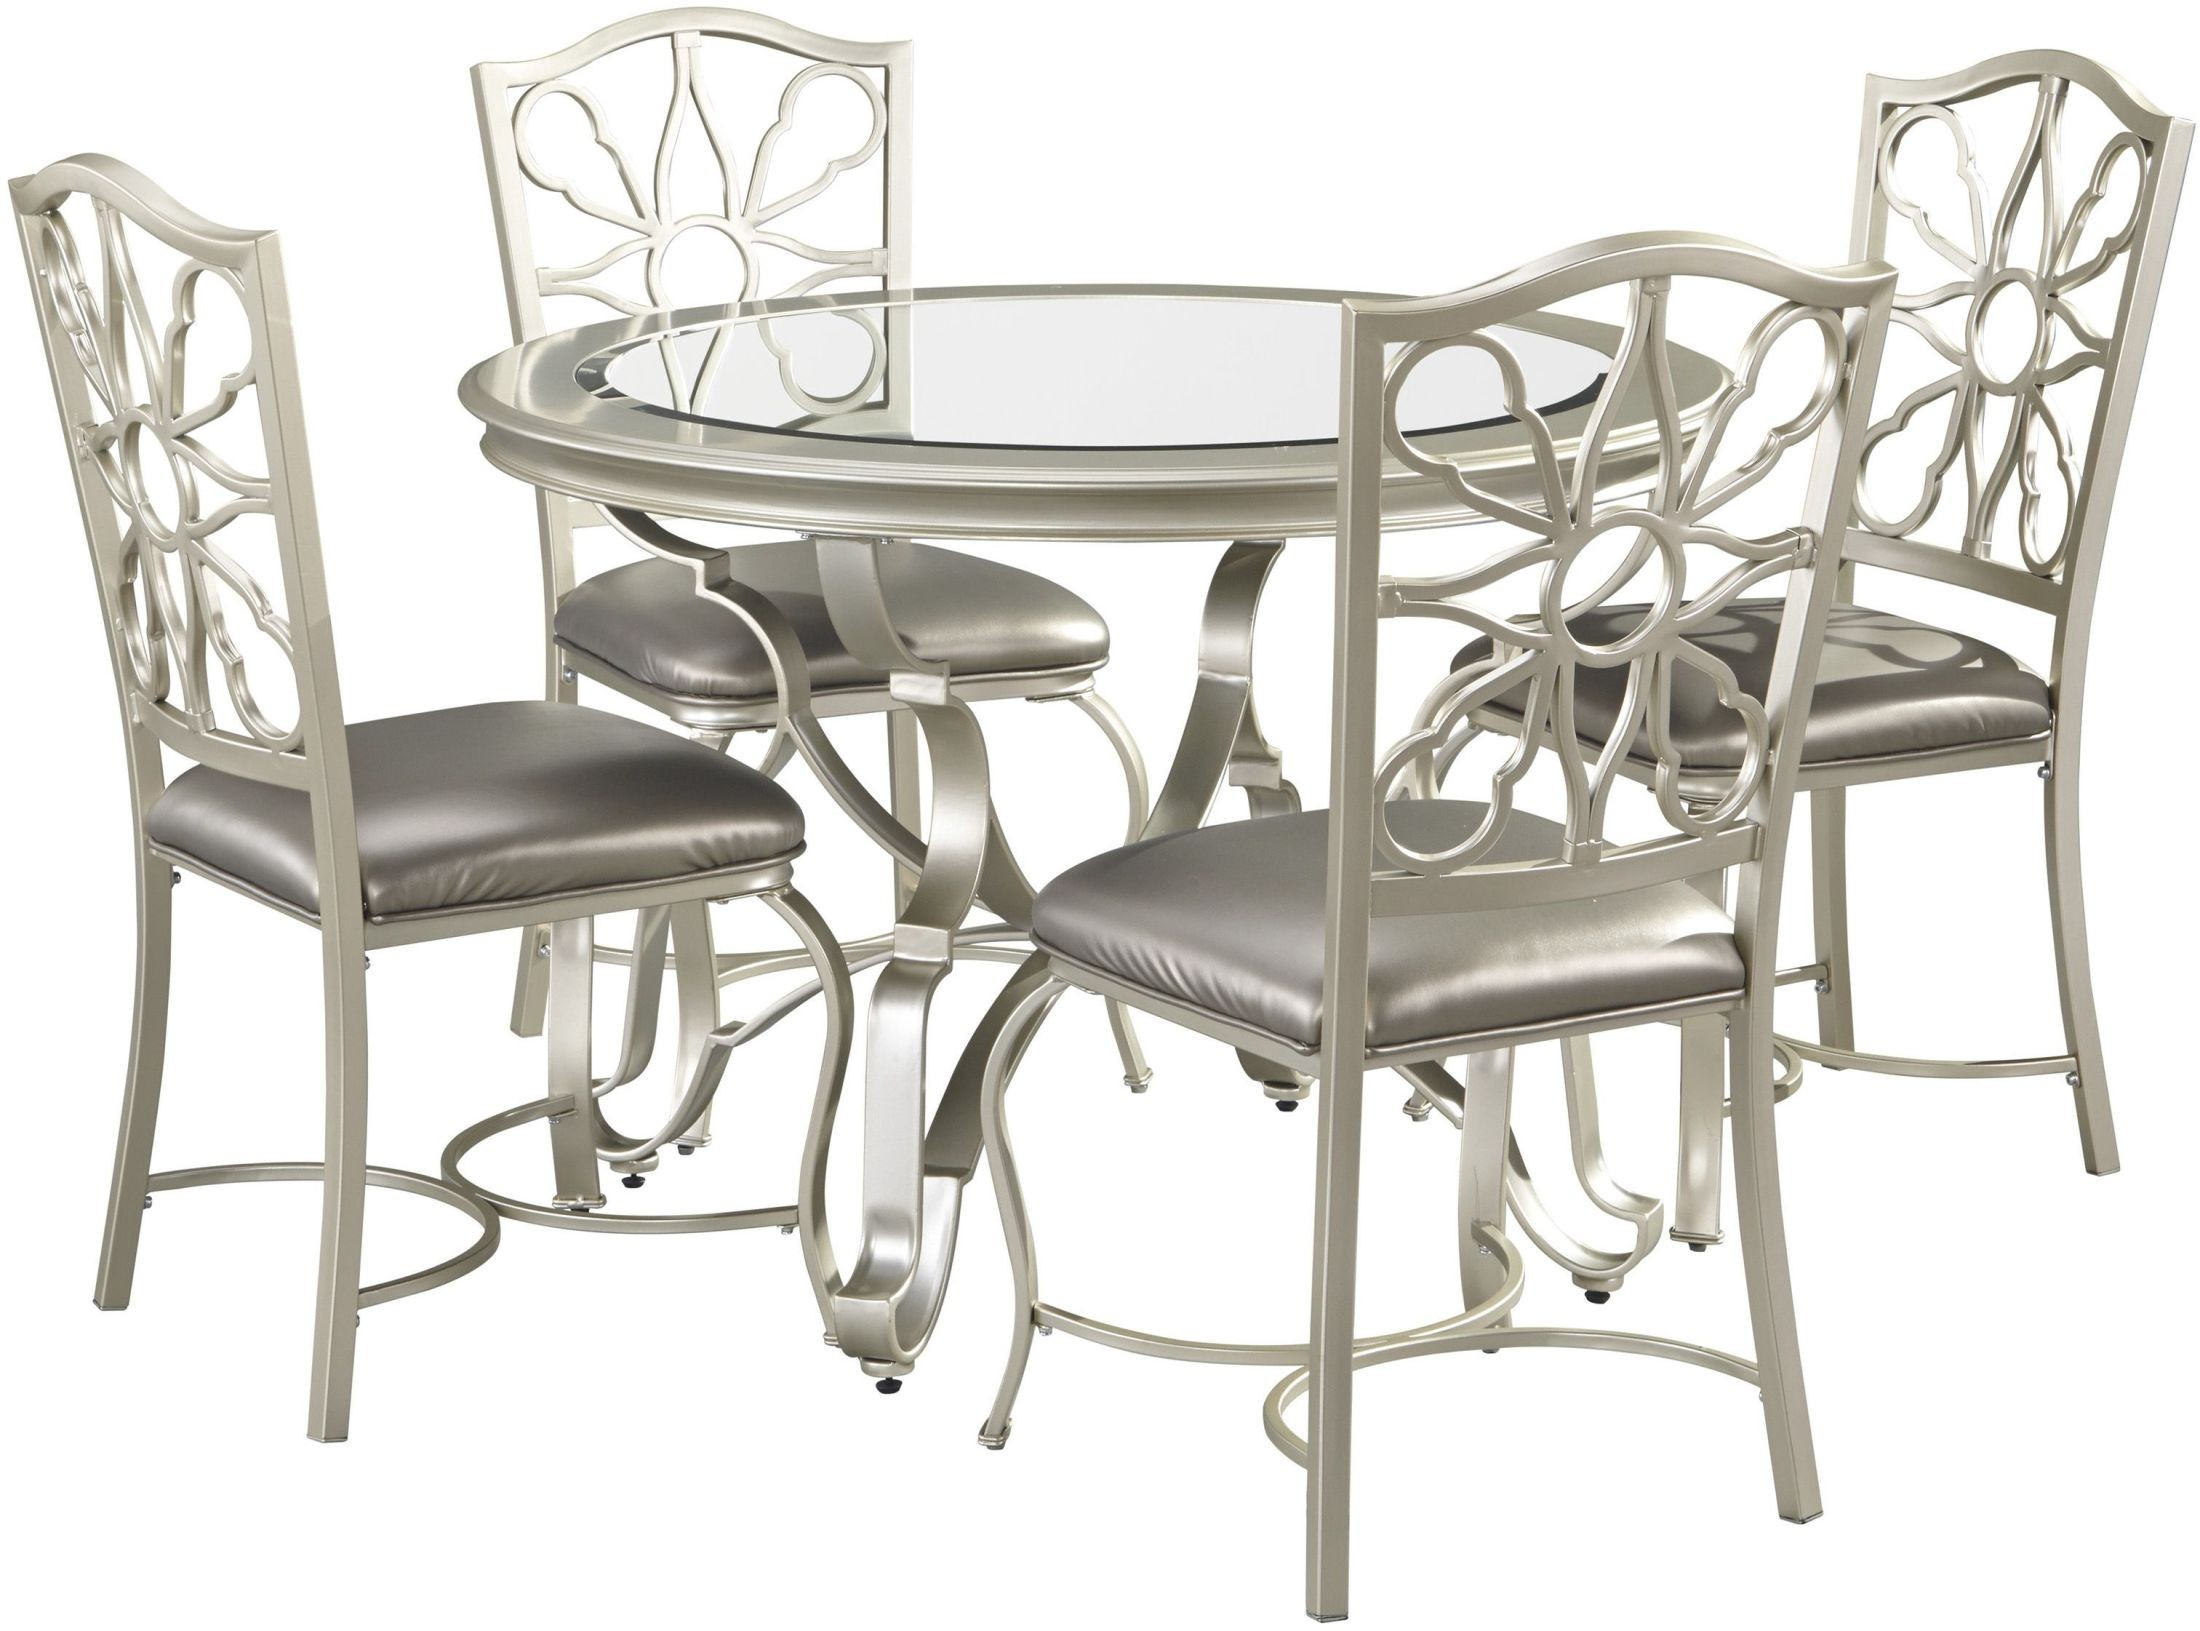 Ashley Furniture Dining Room Table Shollyn Silver Round Dining Room Set D390 15 Ashley